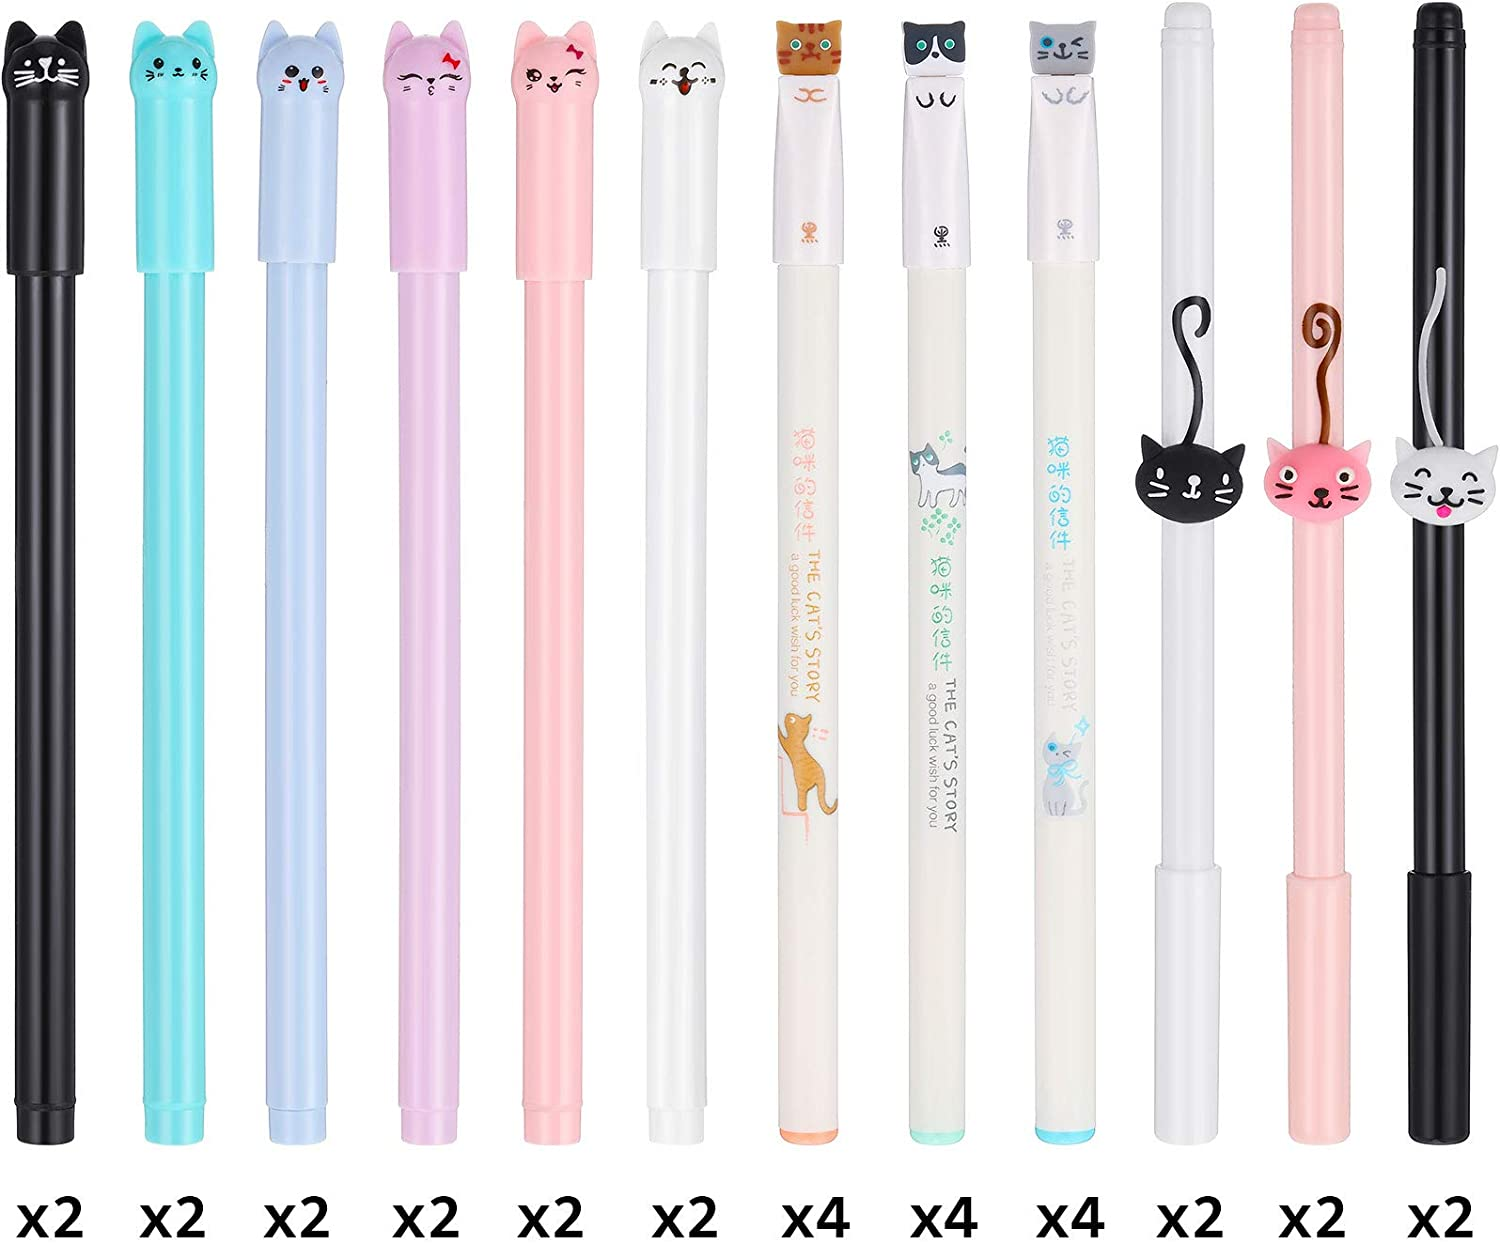 30 Pieces Cute Cat Pen Include 0.38 mm Gel Ink Pen and 0.5 mm Japanese Kawaii Pens Cat Black Ink Pens for School Office Supplies Women Girl Cat Lover Gifts (3 Styles)